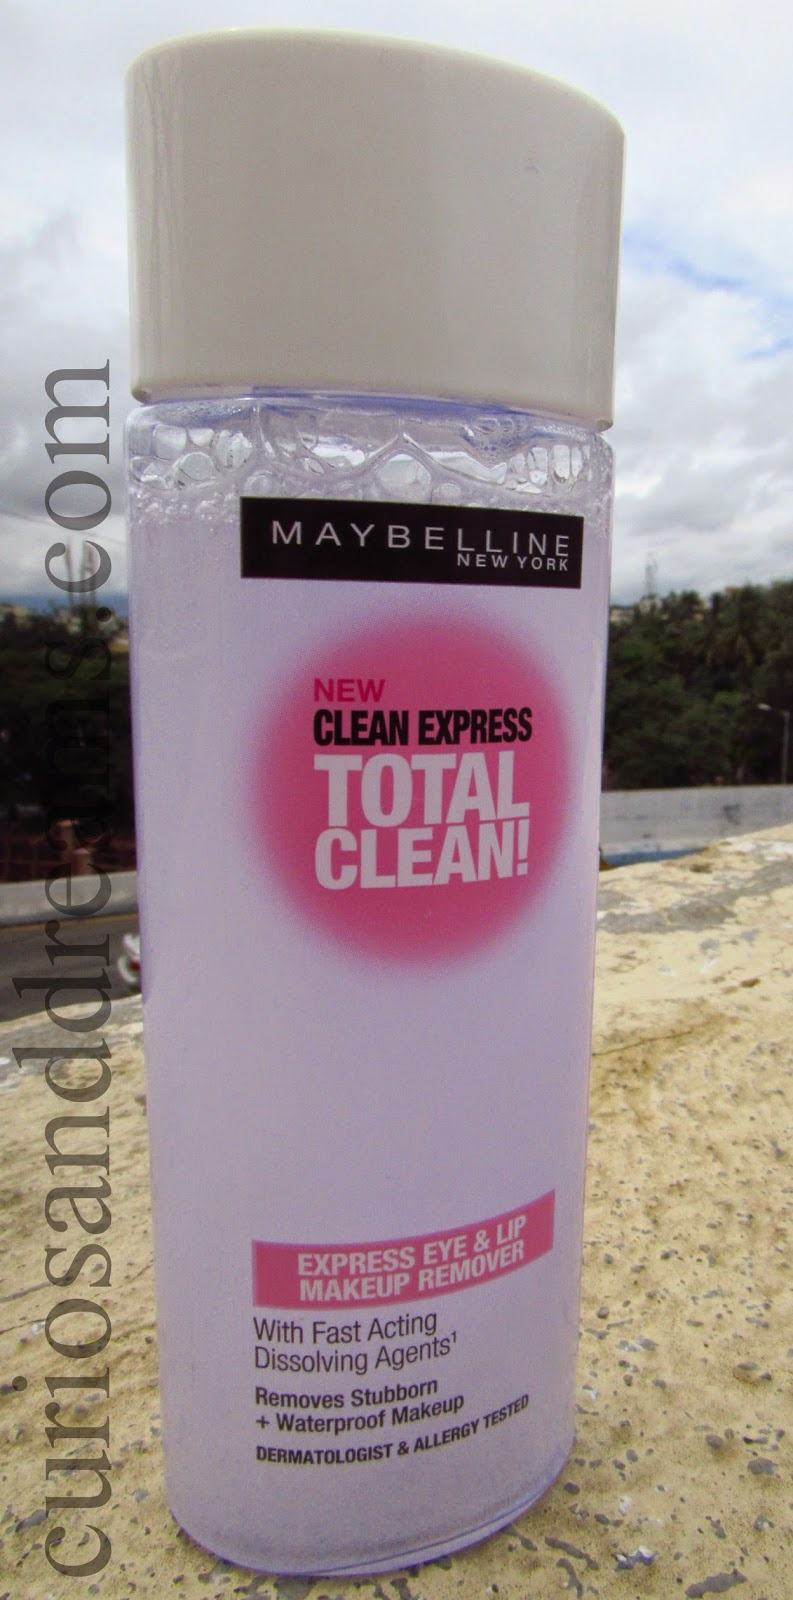 Maybelline Clean Express Total Clean Makeup Remover Review,Maybelline Total Clean Makeup Remover Review